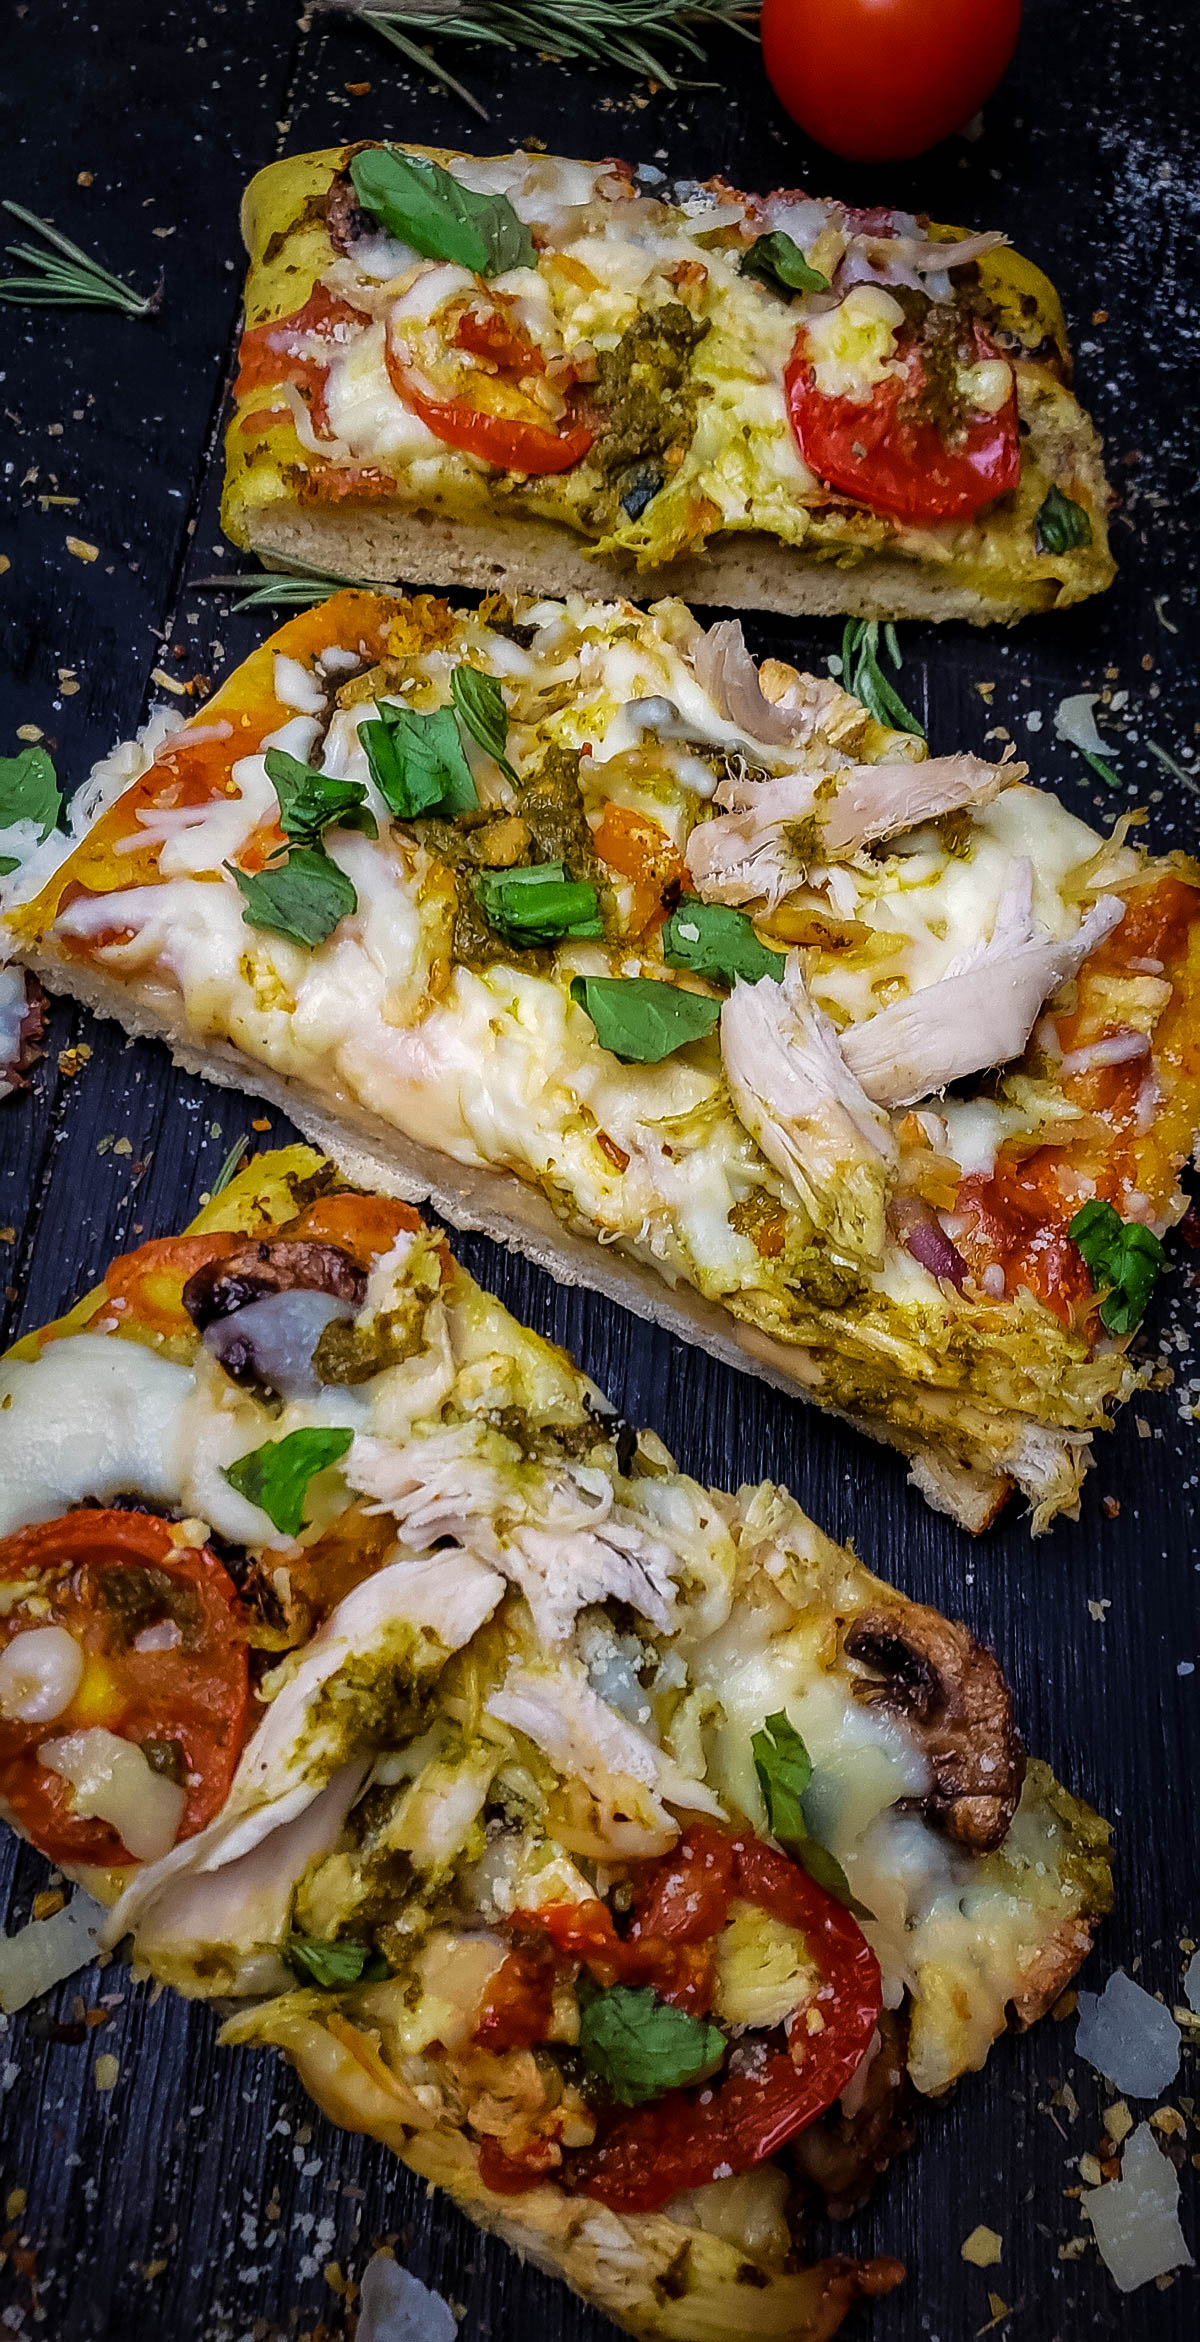 Pesto chicken pizza with different toppings